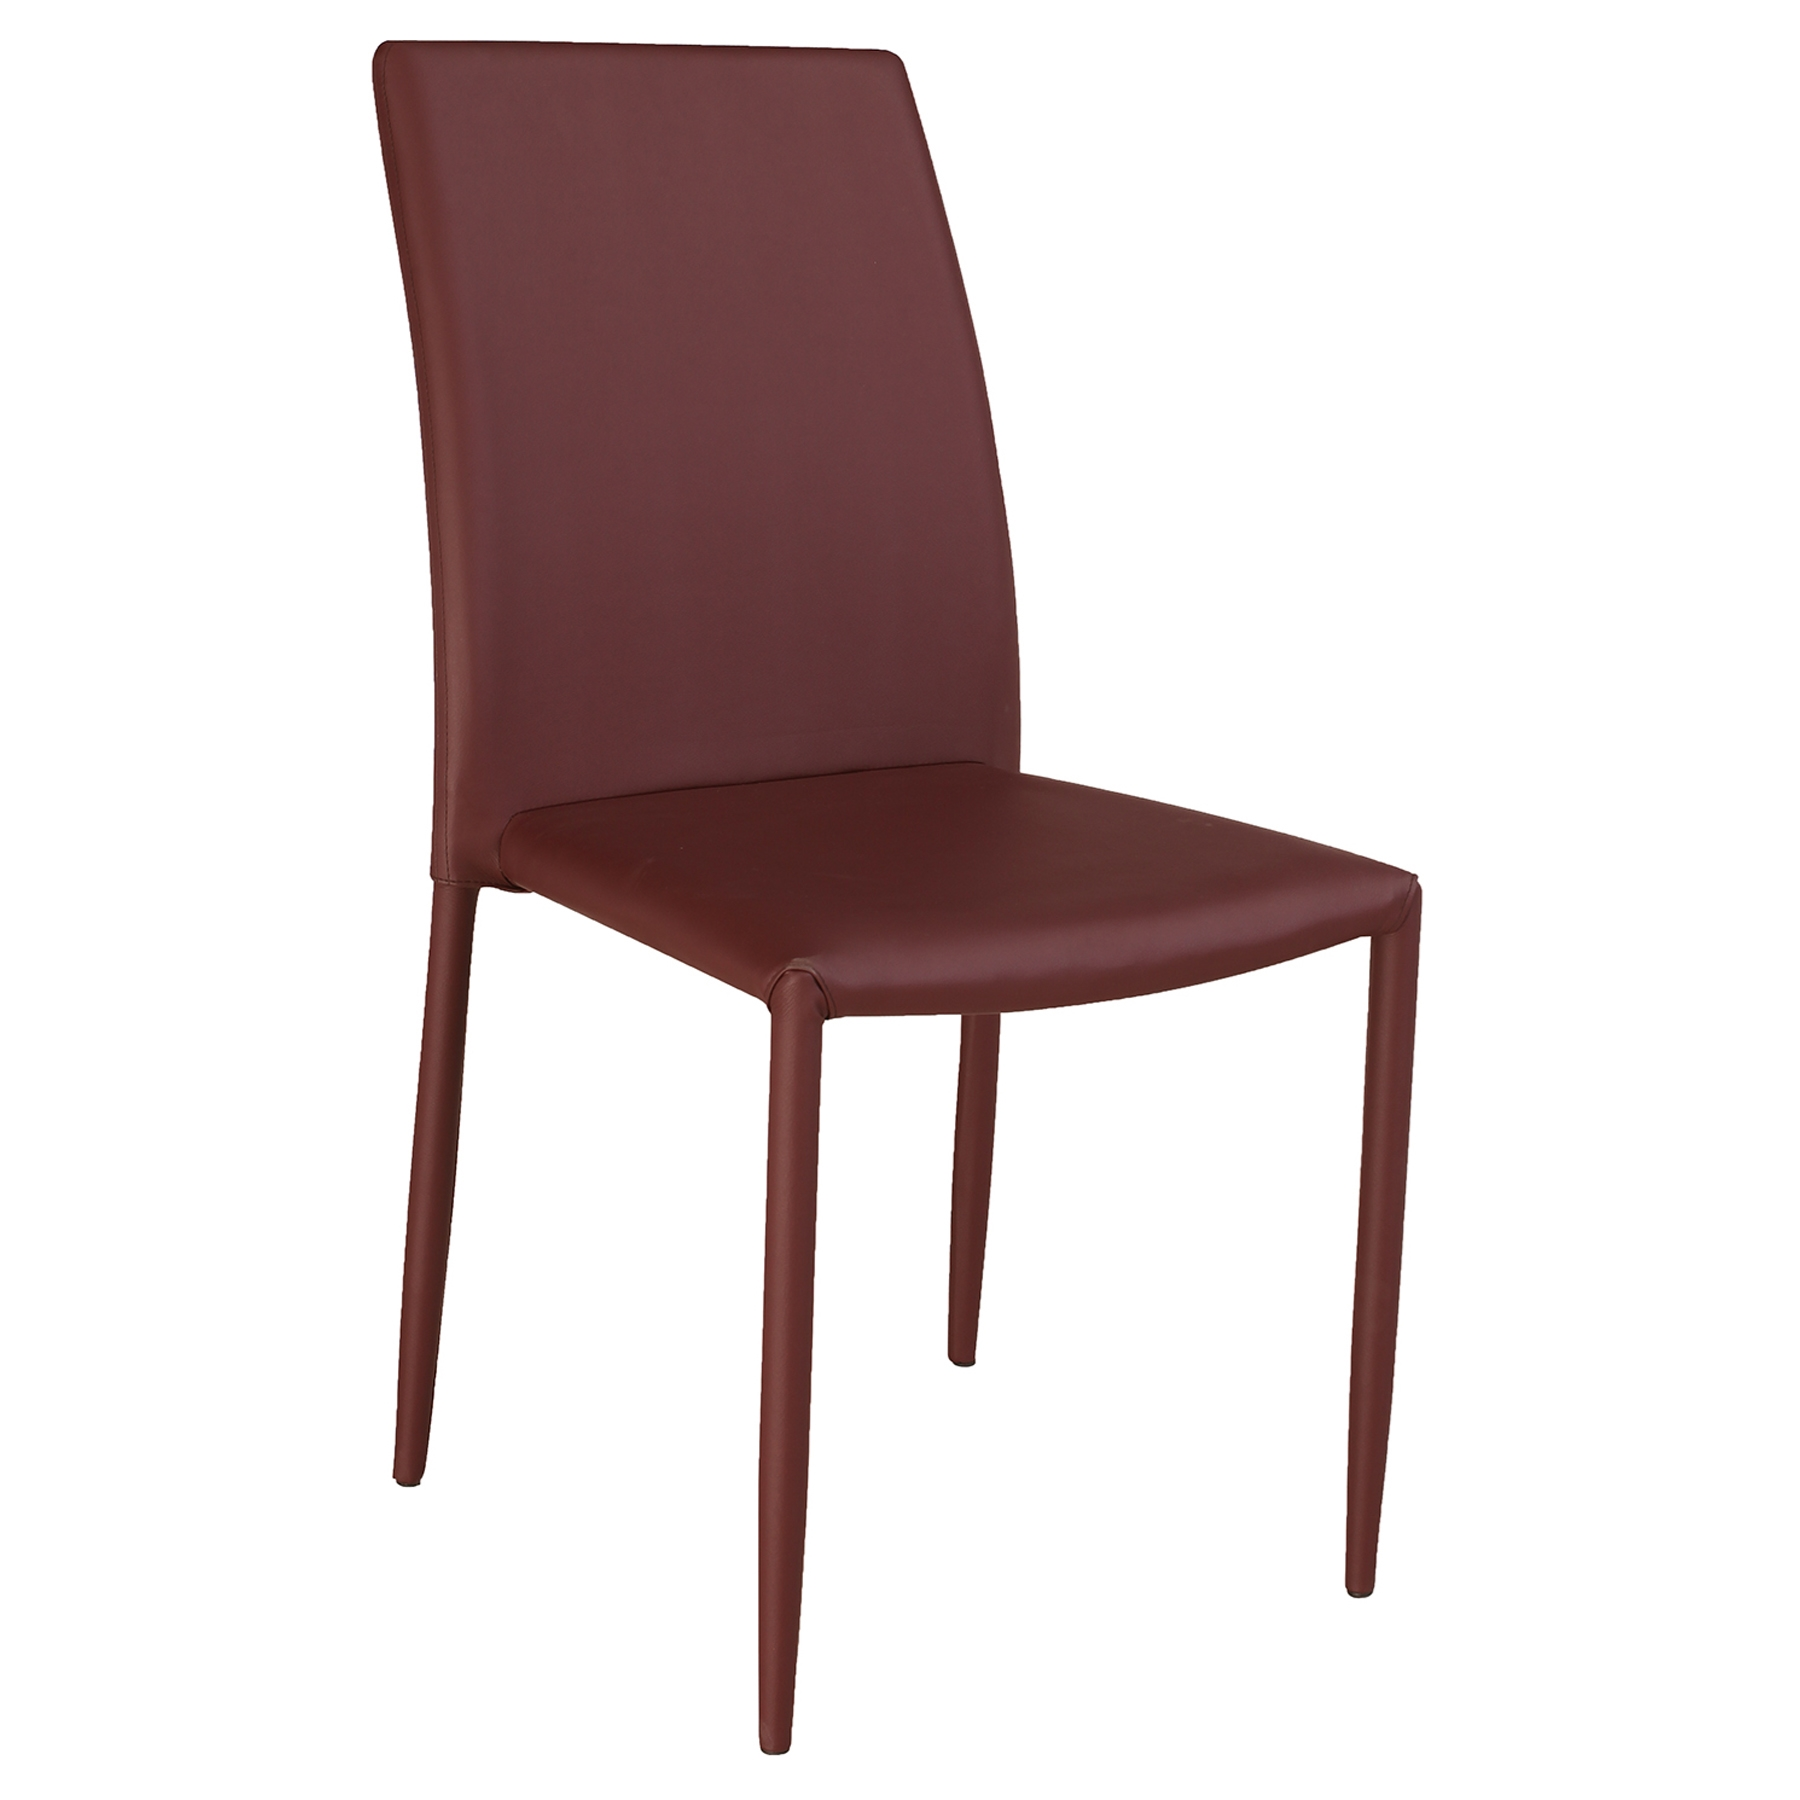 Fiona Stackable Side Chair - Burgundy Faux Leather (Set of 4)